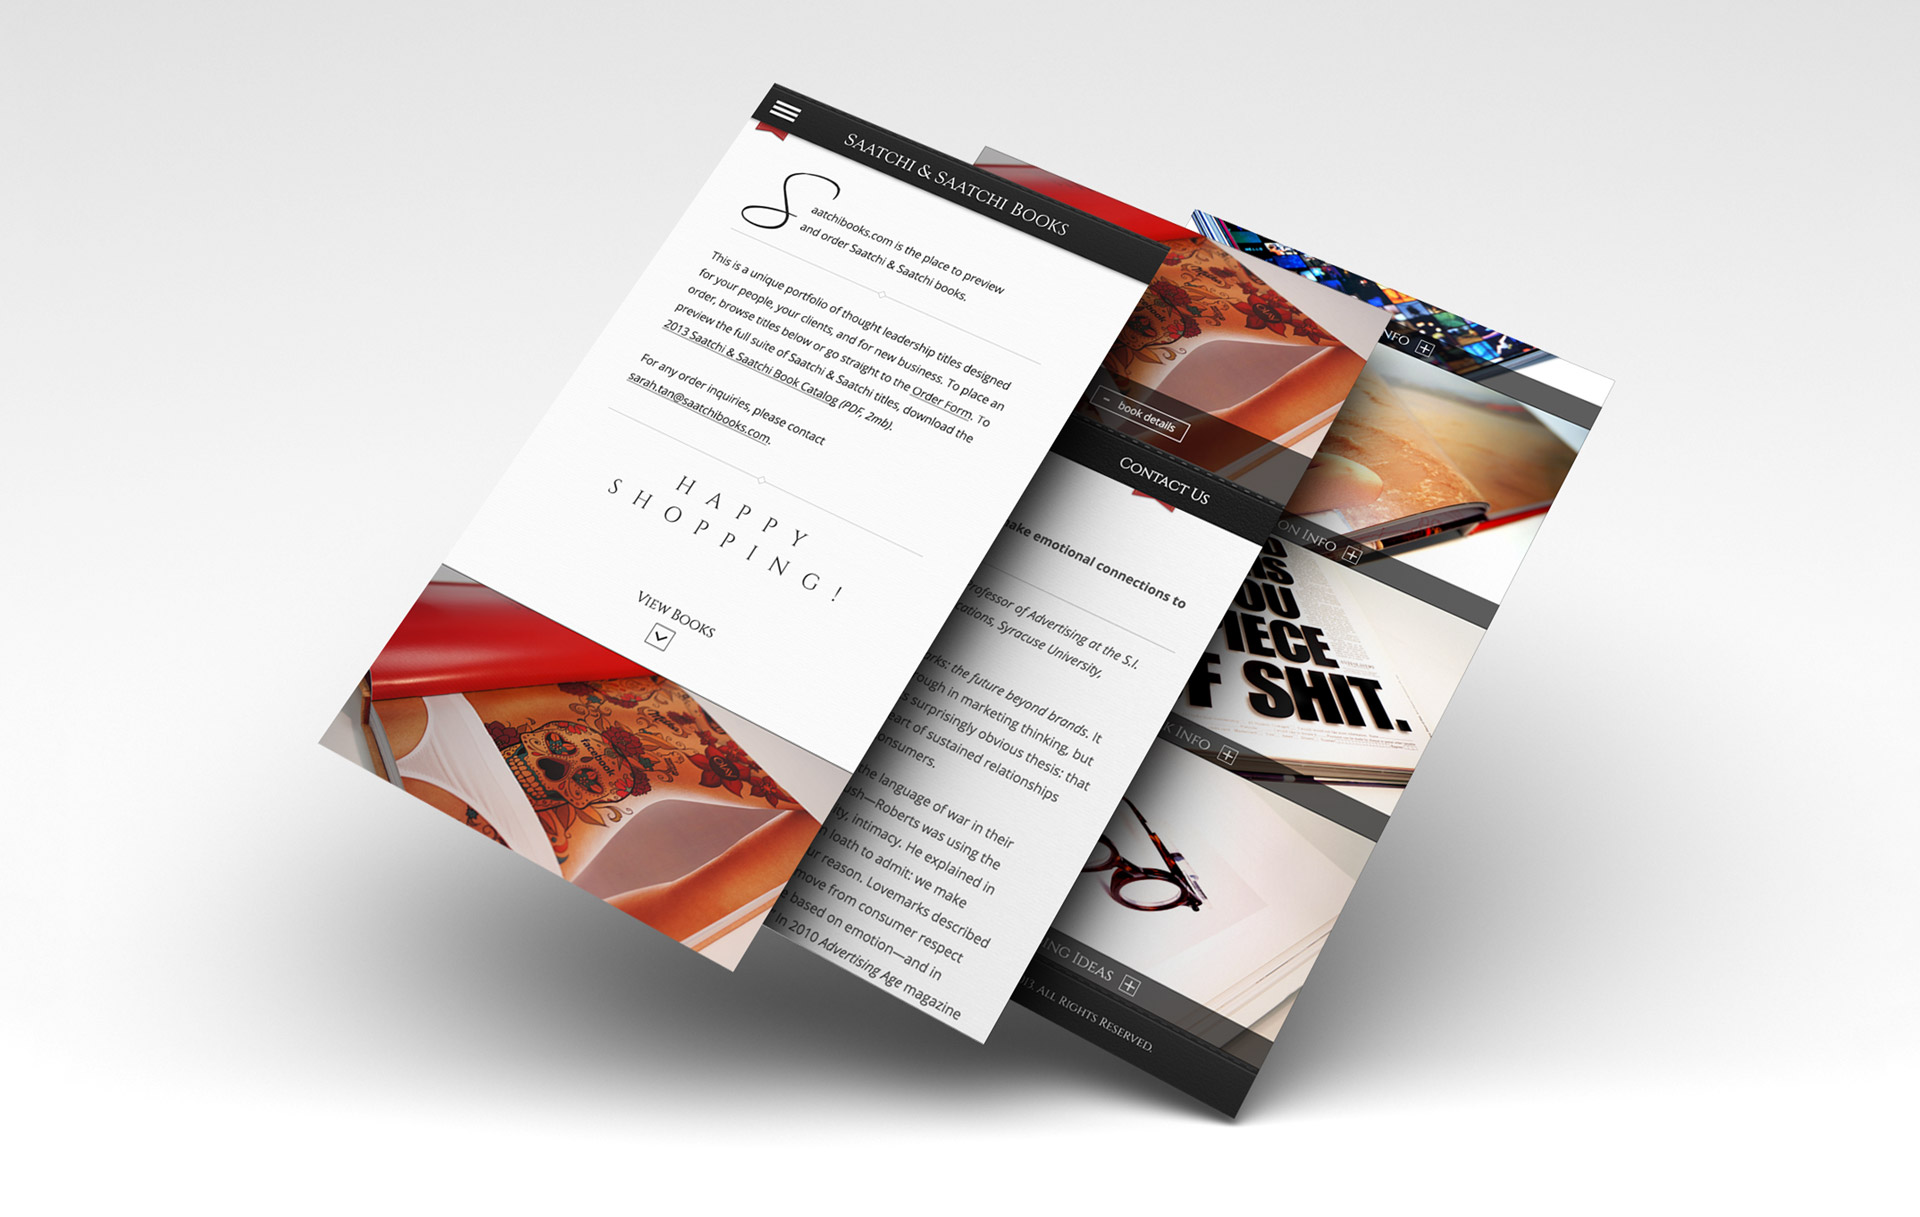 Mobile designs for Saatchi & Saatchi Books website